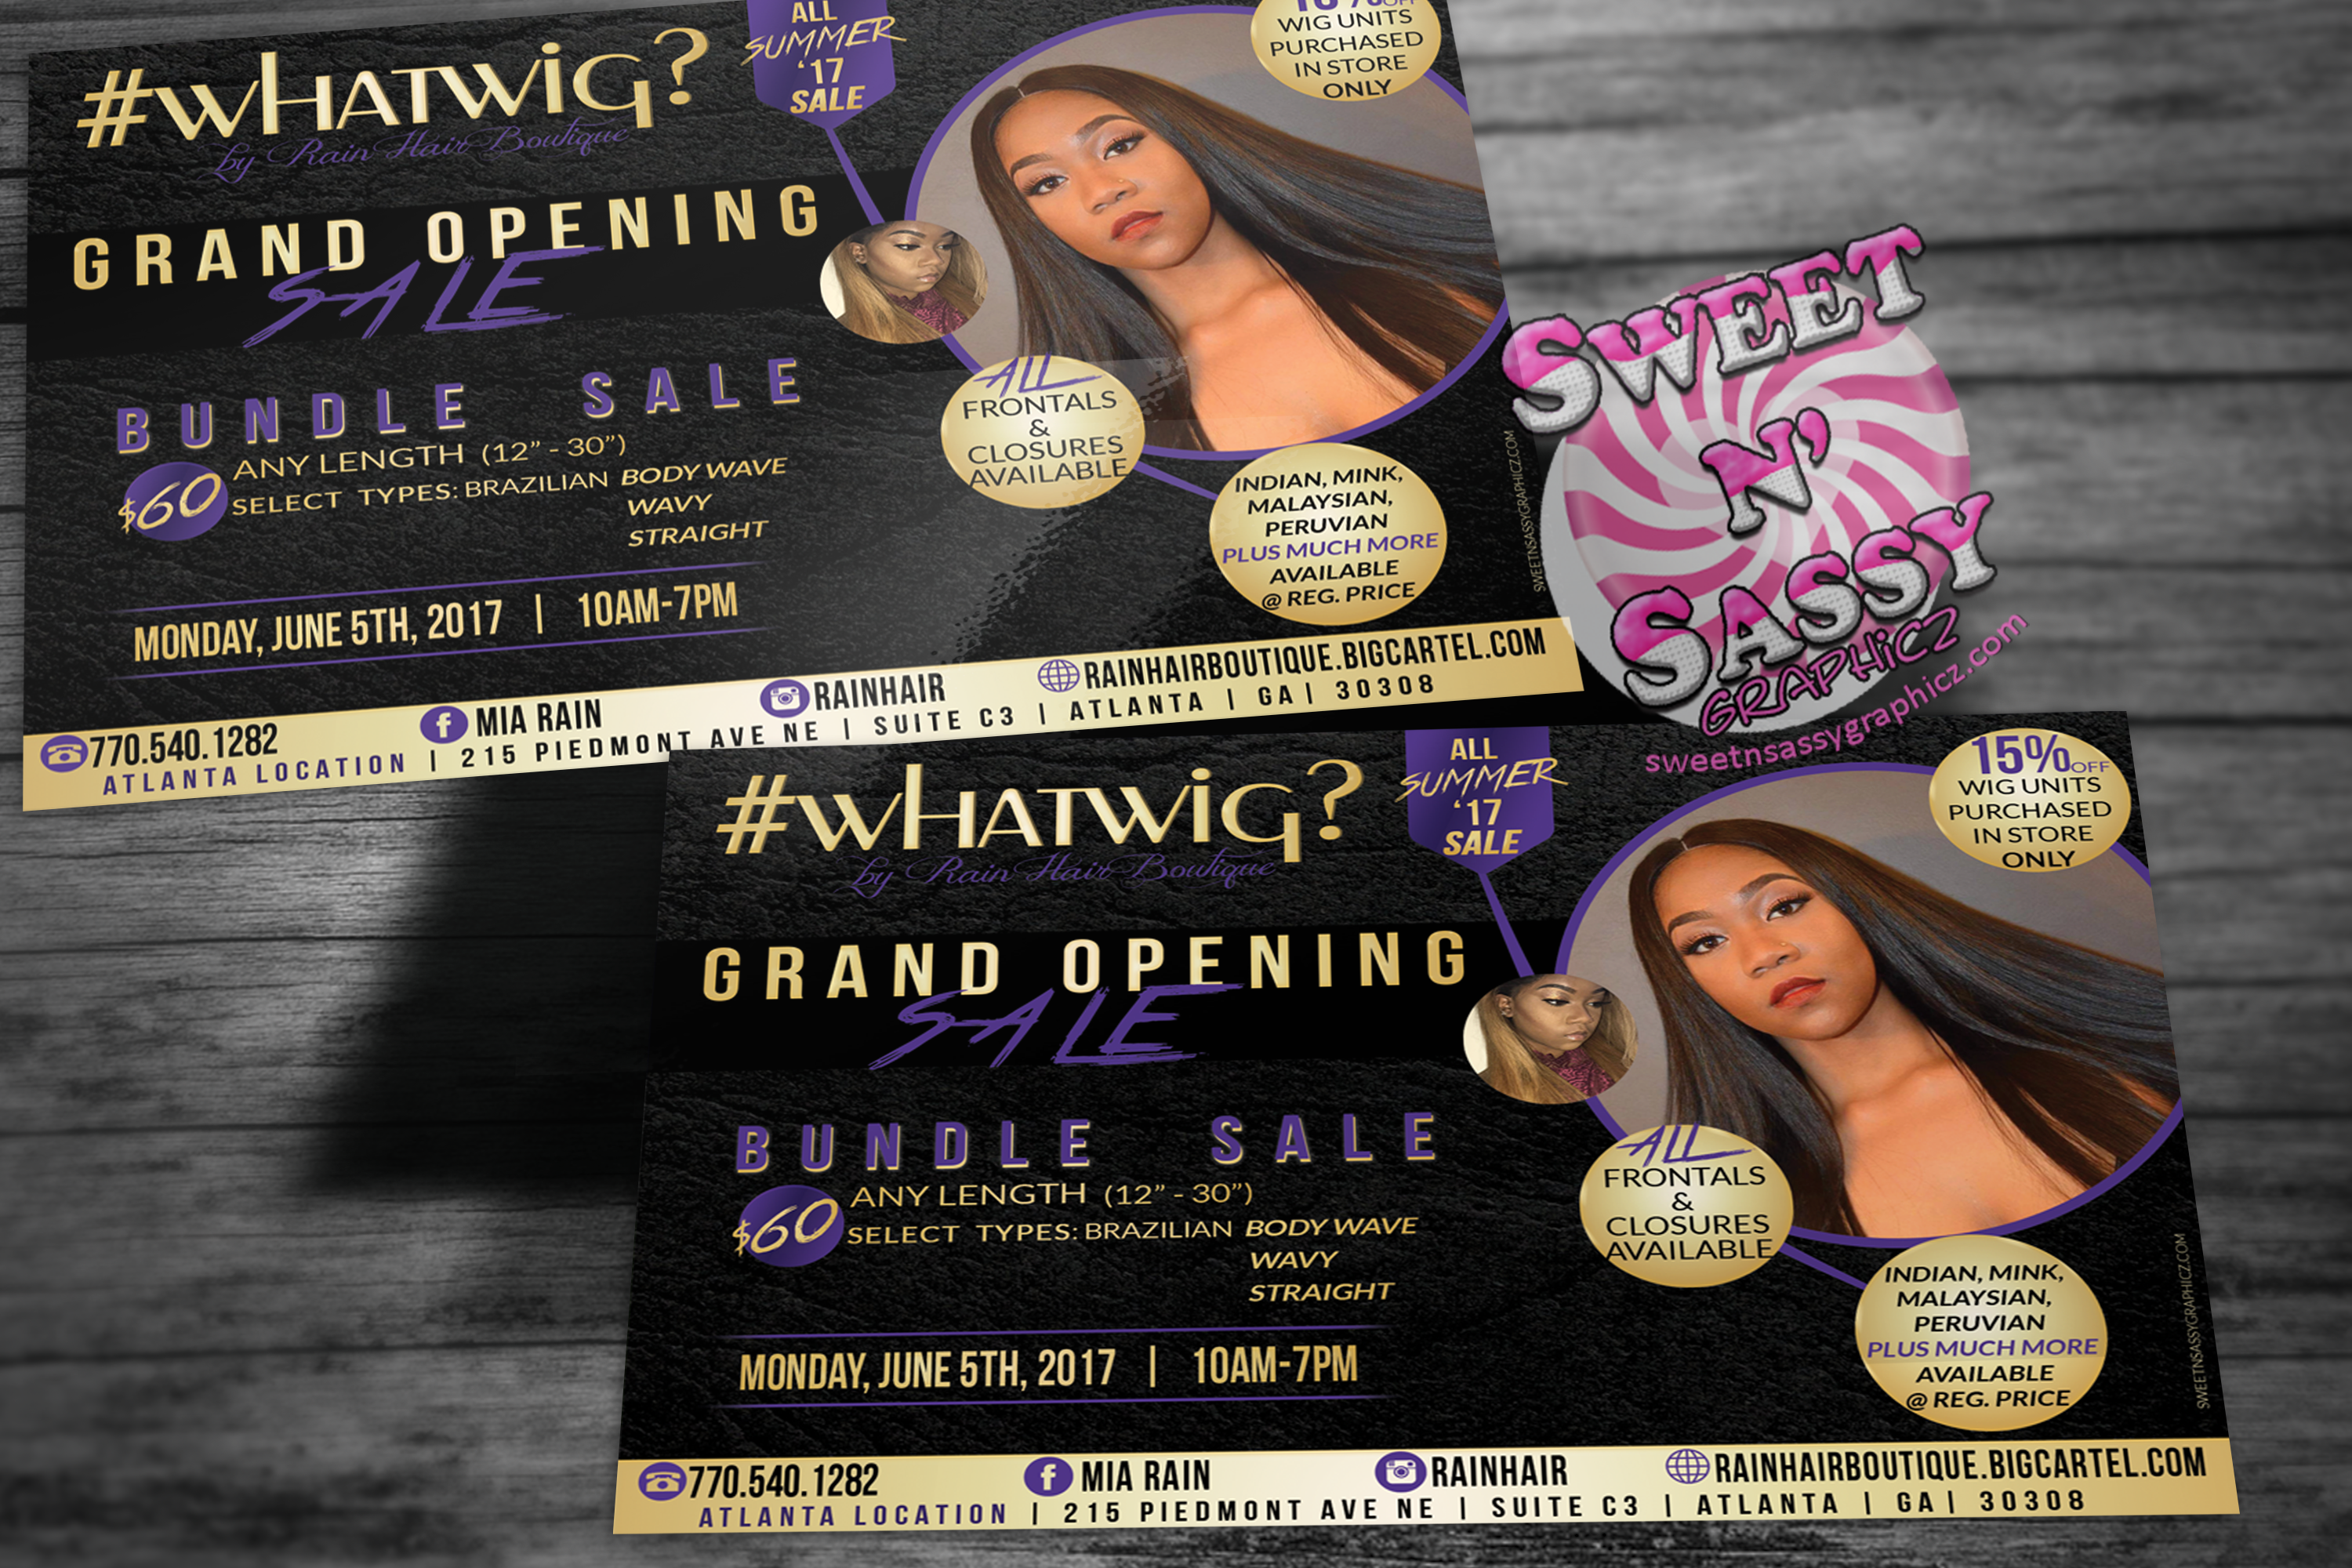 #WHATWIG Grand opening Flyer